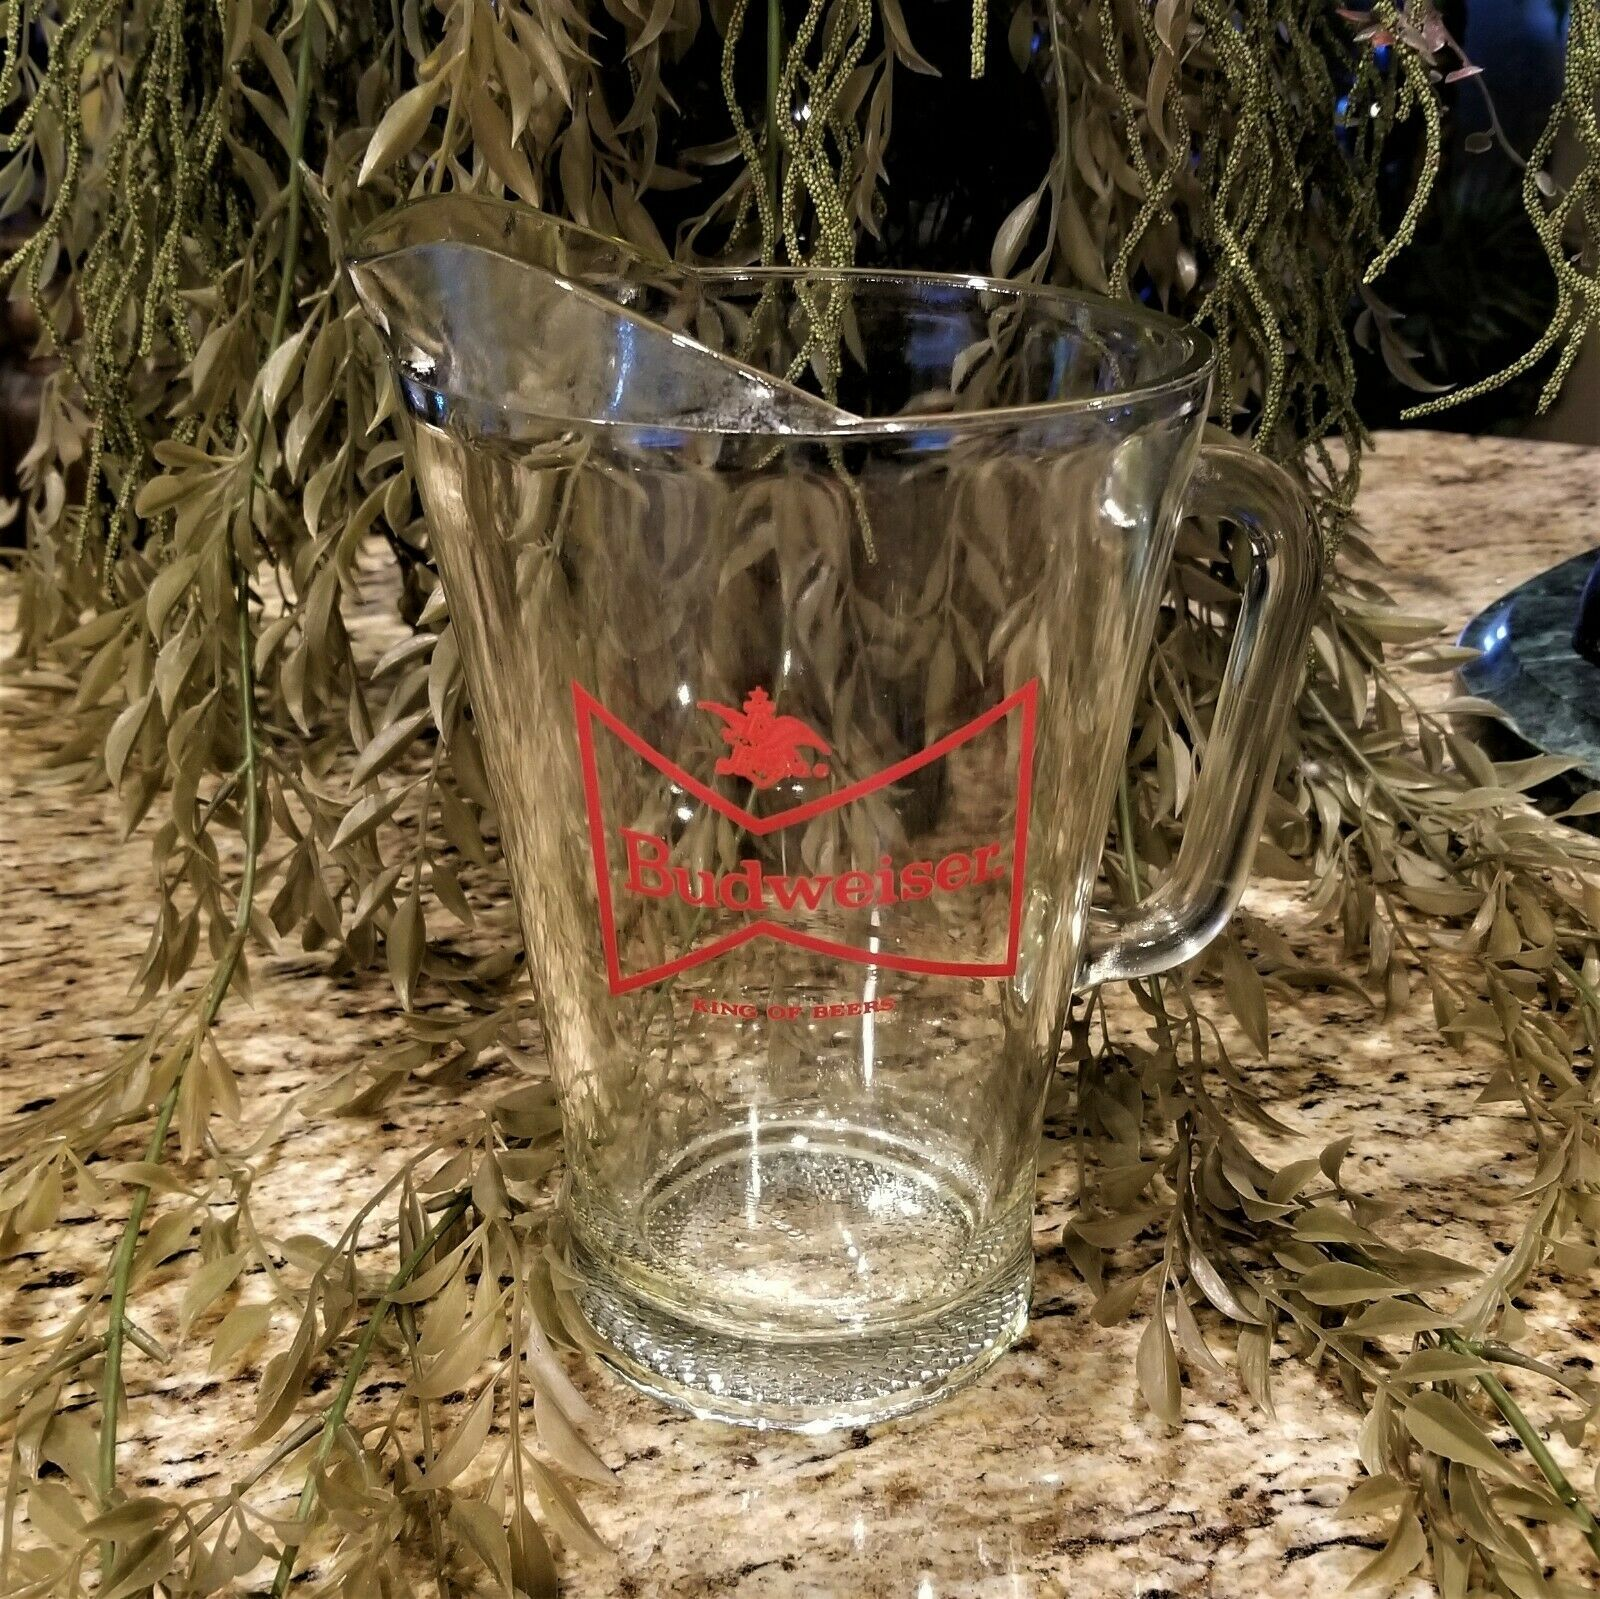 Vintage 1970's Large BUDWEISER King of Beers Heavy Glass Serving Pitcher - $22.95